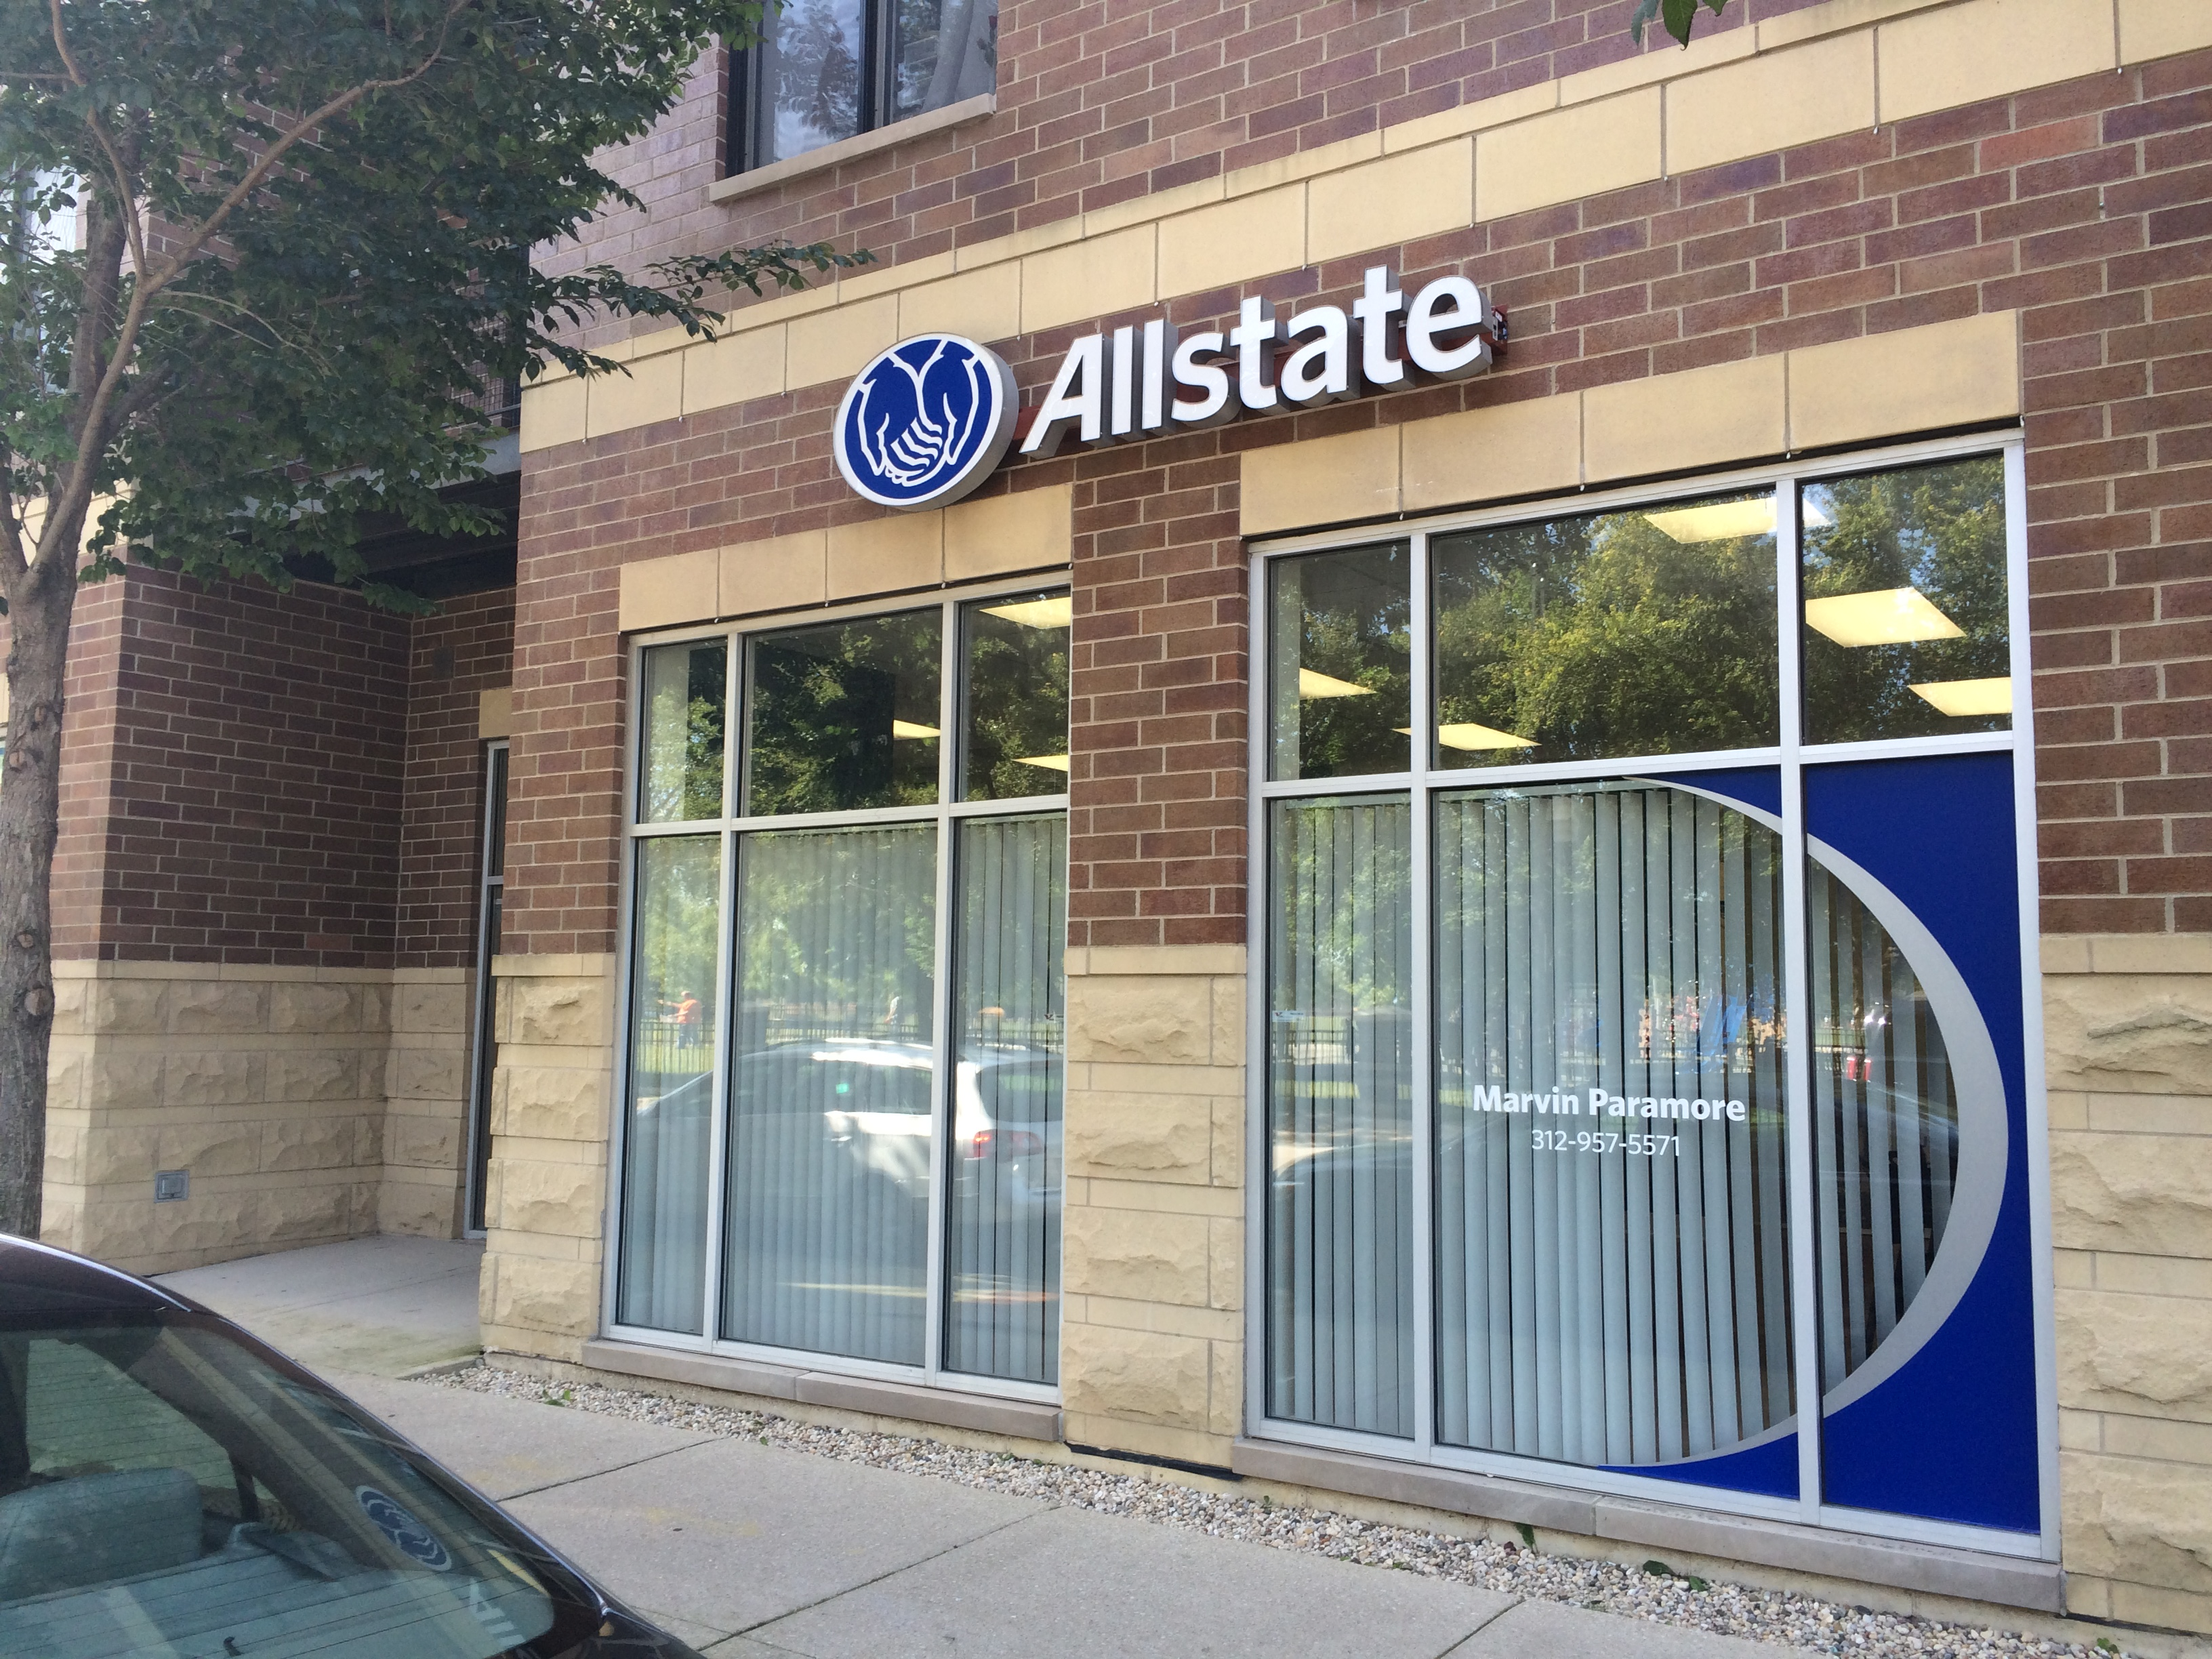 Marvin Paramore: Allstate Insurance image 1